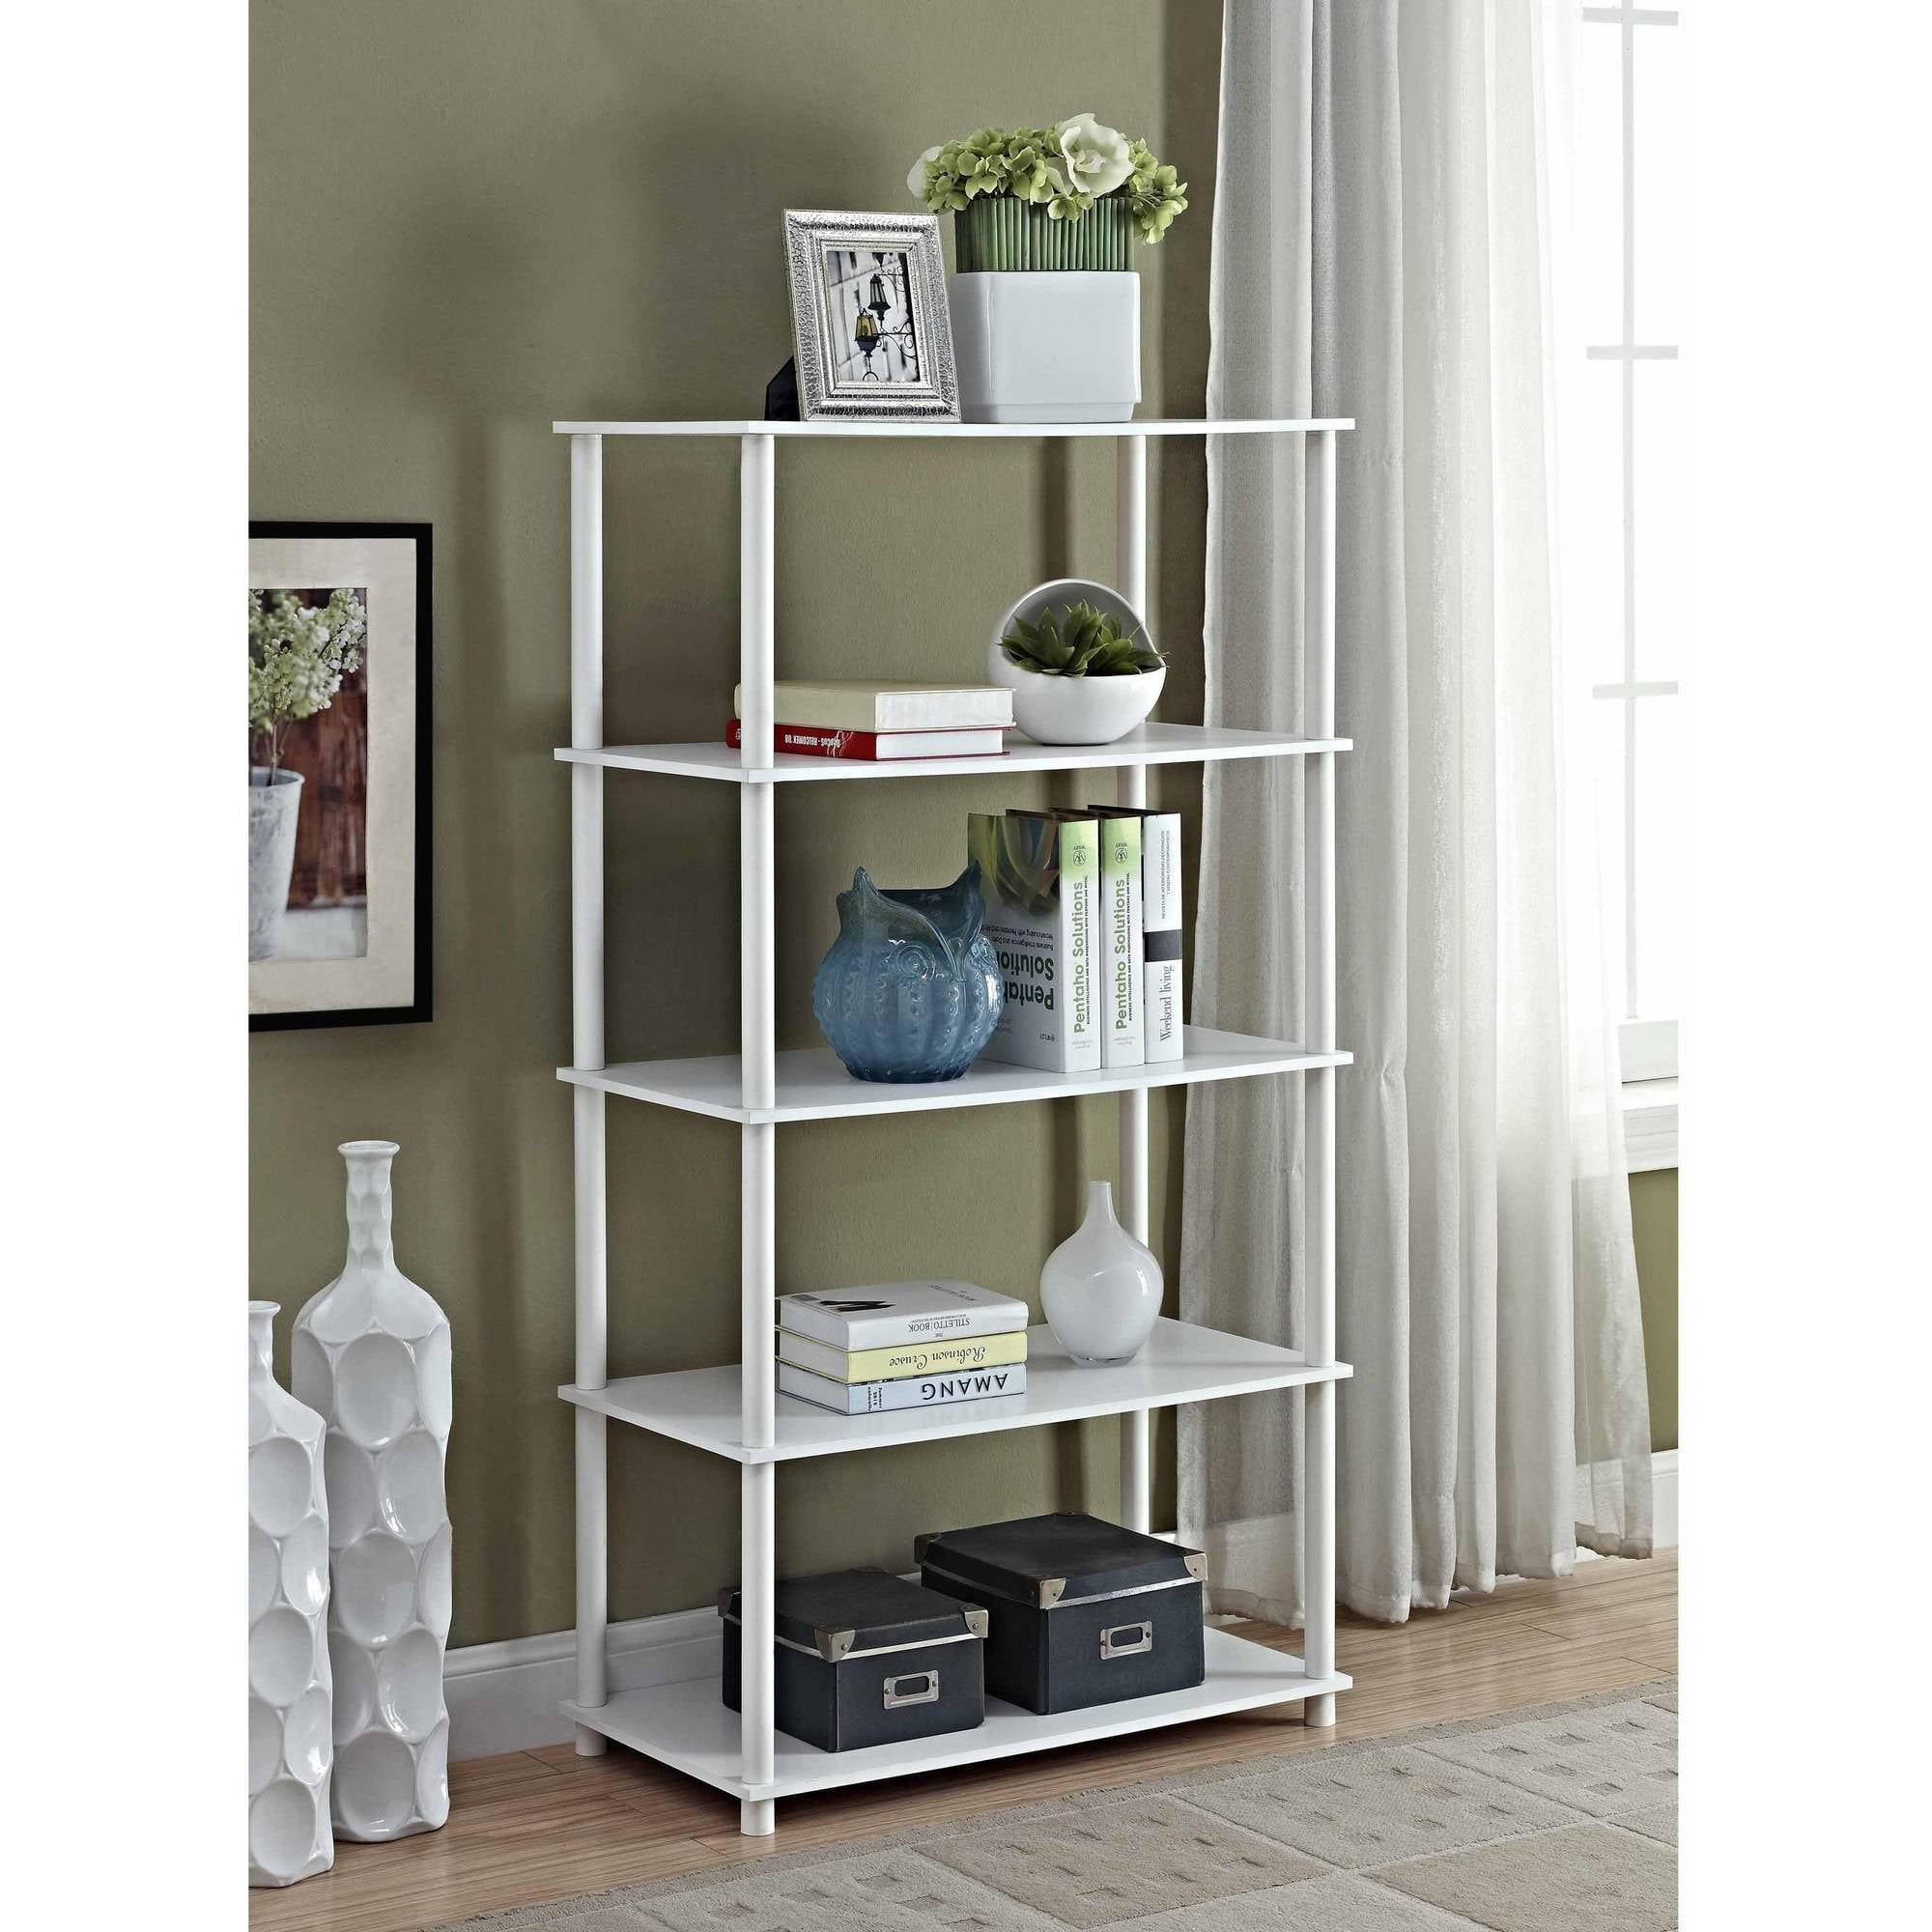 Do It Yourself Home Design: No Tools Assembly 8 Cube Shelving Storage Unit Shelves